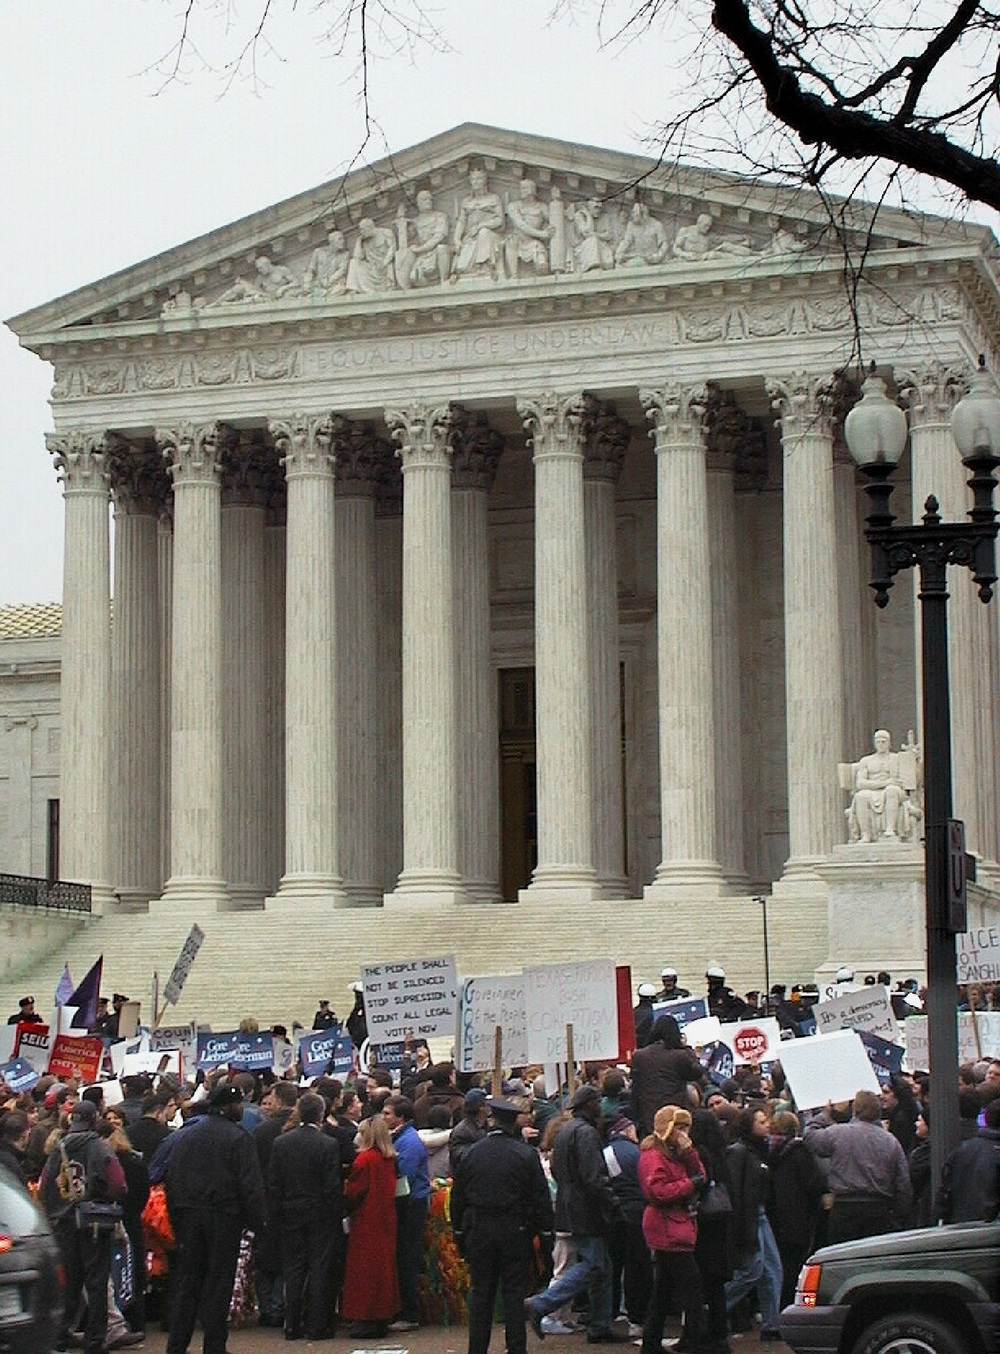 SupremeCourt-Protest-hires.jpg